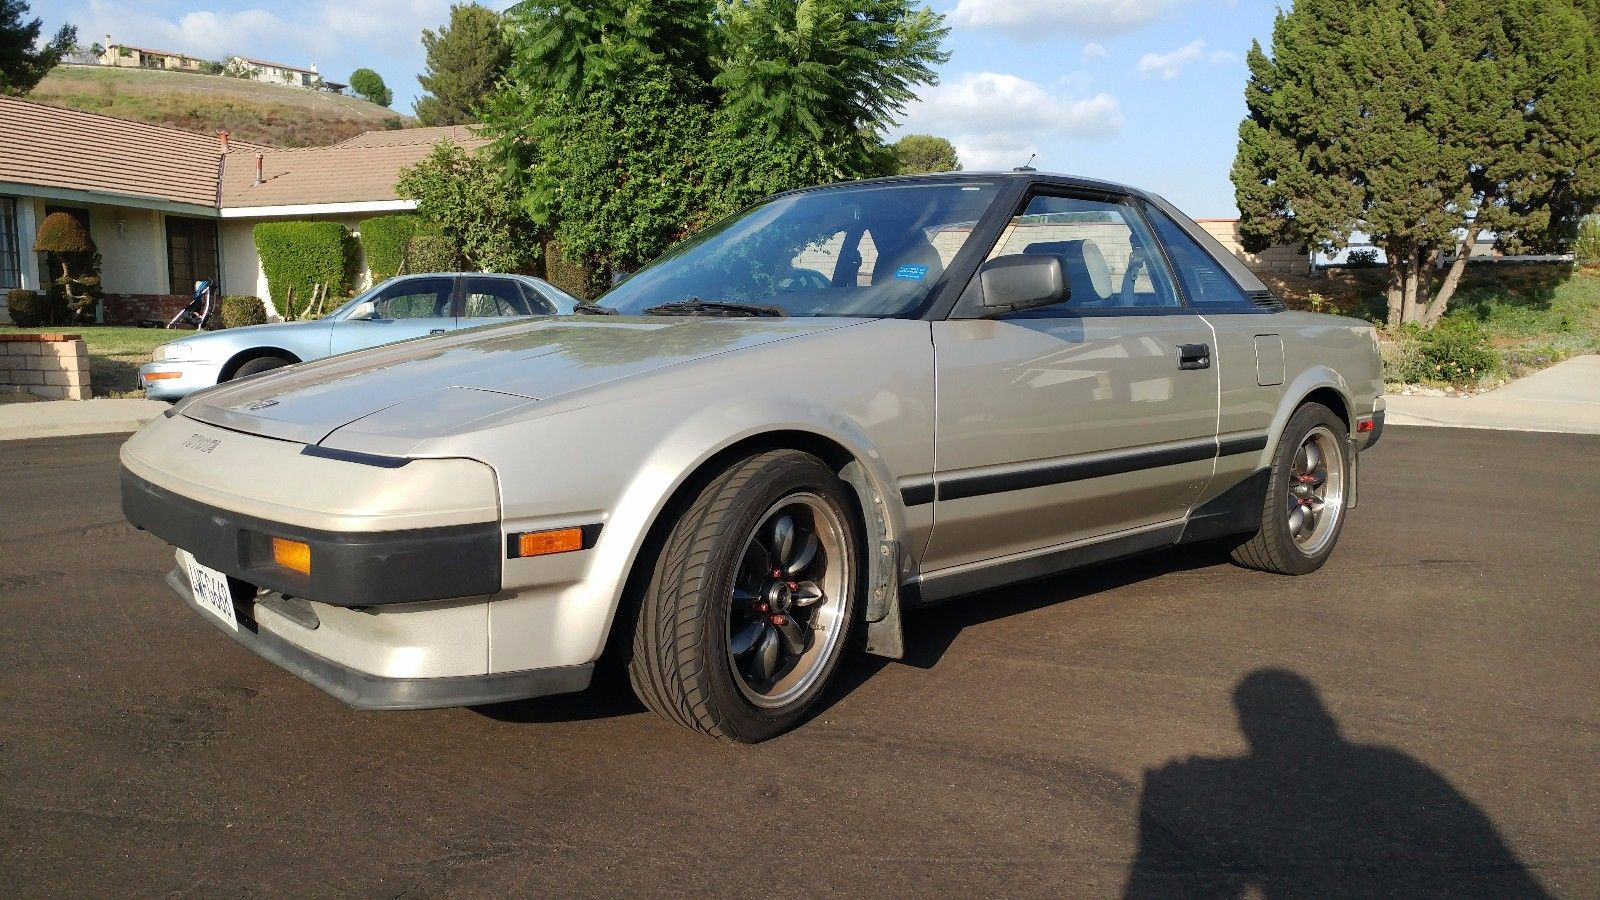 medium resolution of up for your consideration is a beautiful 1985 aw 11 toyota mr2 it is an excellent driver level example finished in original light beige metallic